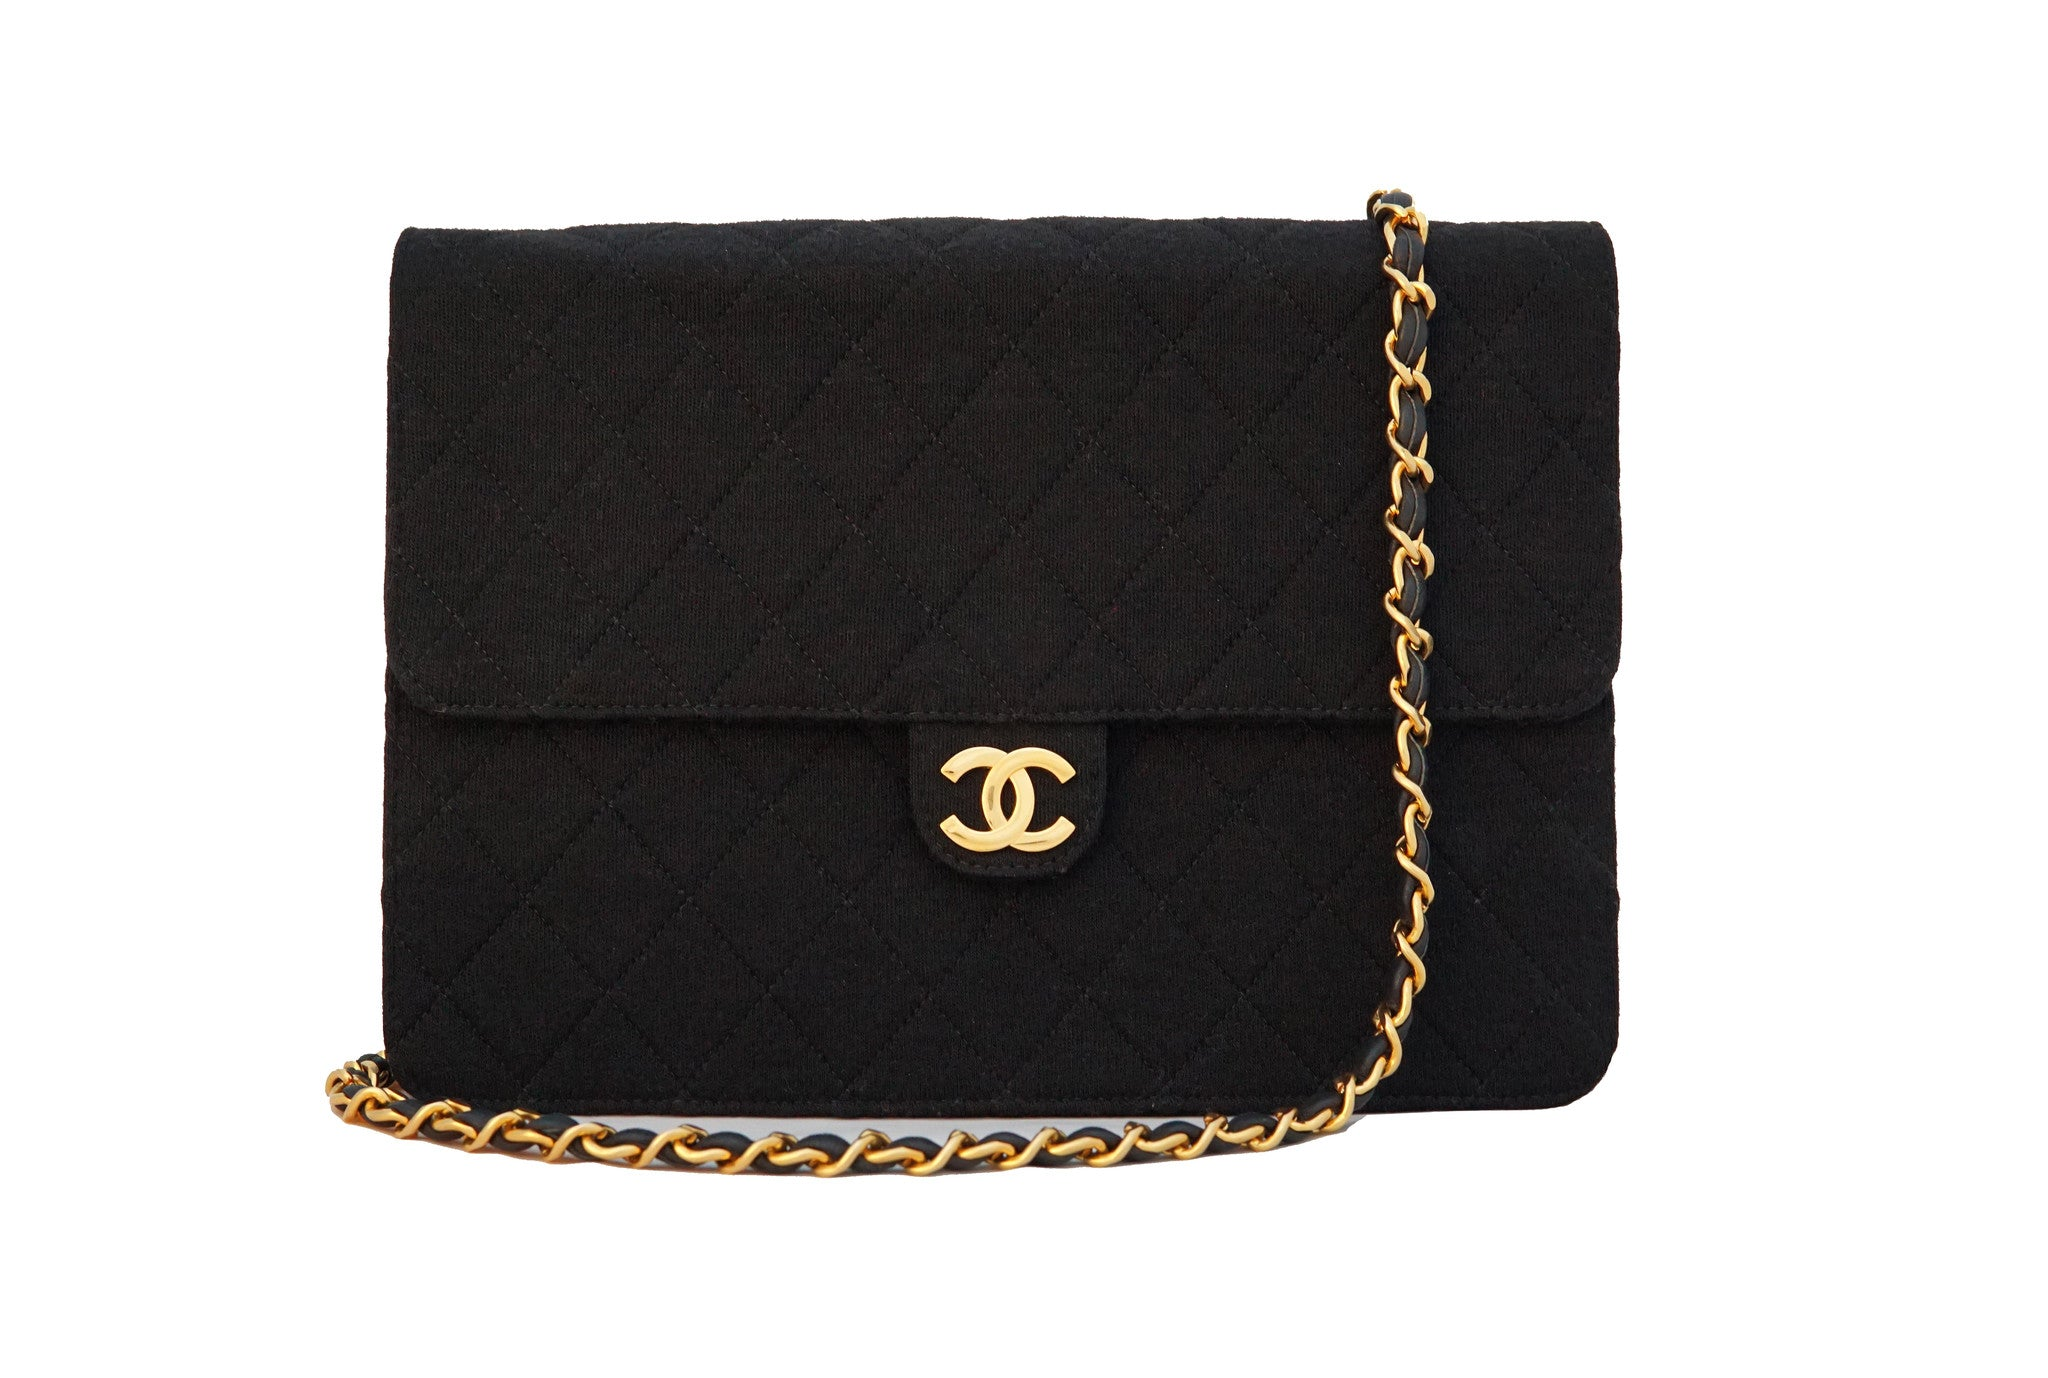 b82adf421daa43 CHANEL VINTAGE BAG - Quilted Jersey Single Flap Shoulder Bag - Vintage  District